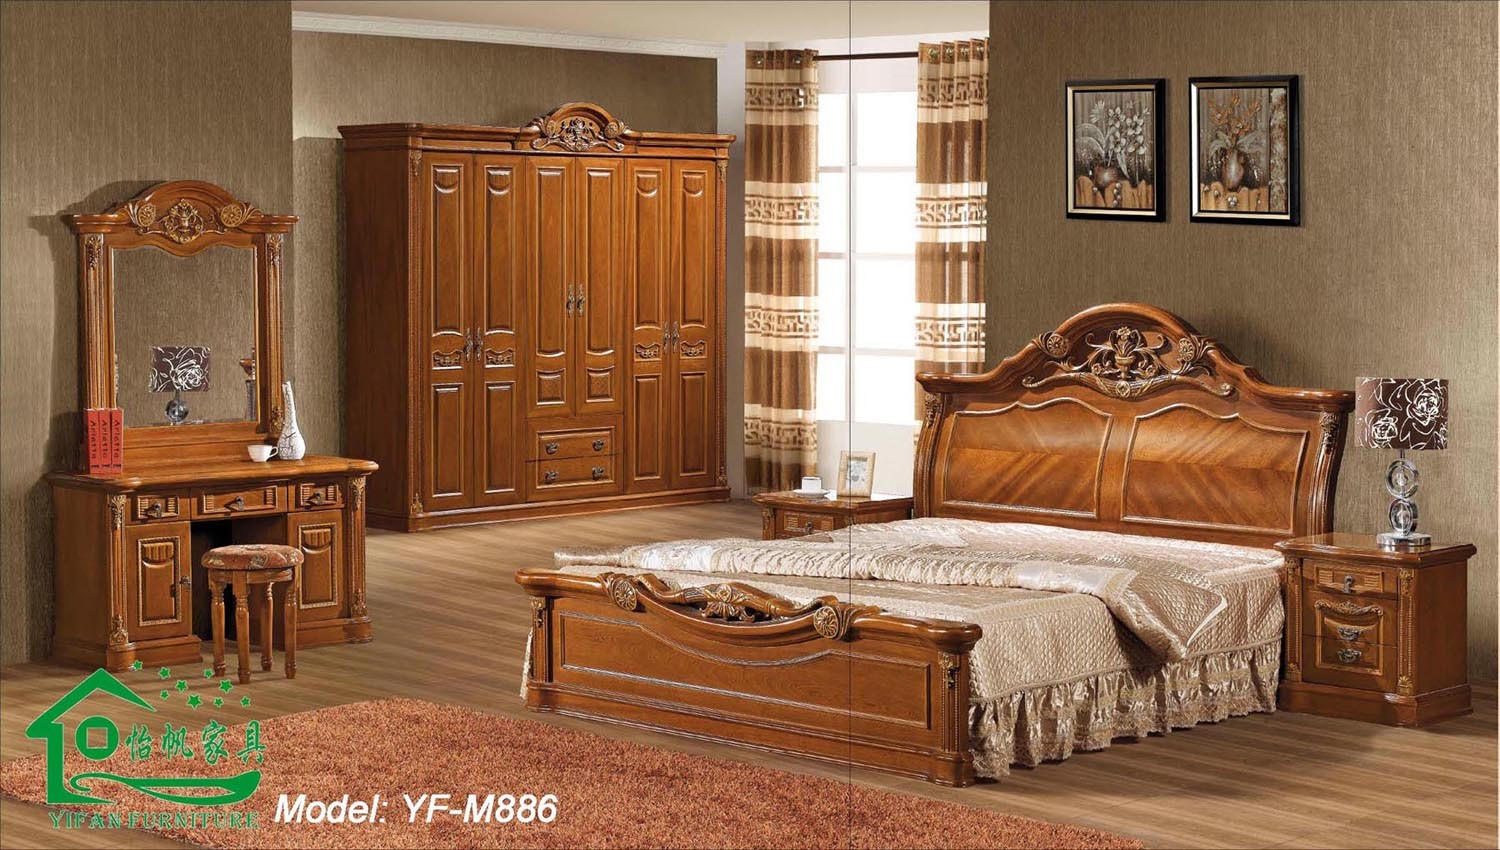 images of 2013 new design solid wood bedroom furniture yf m886